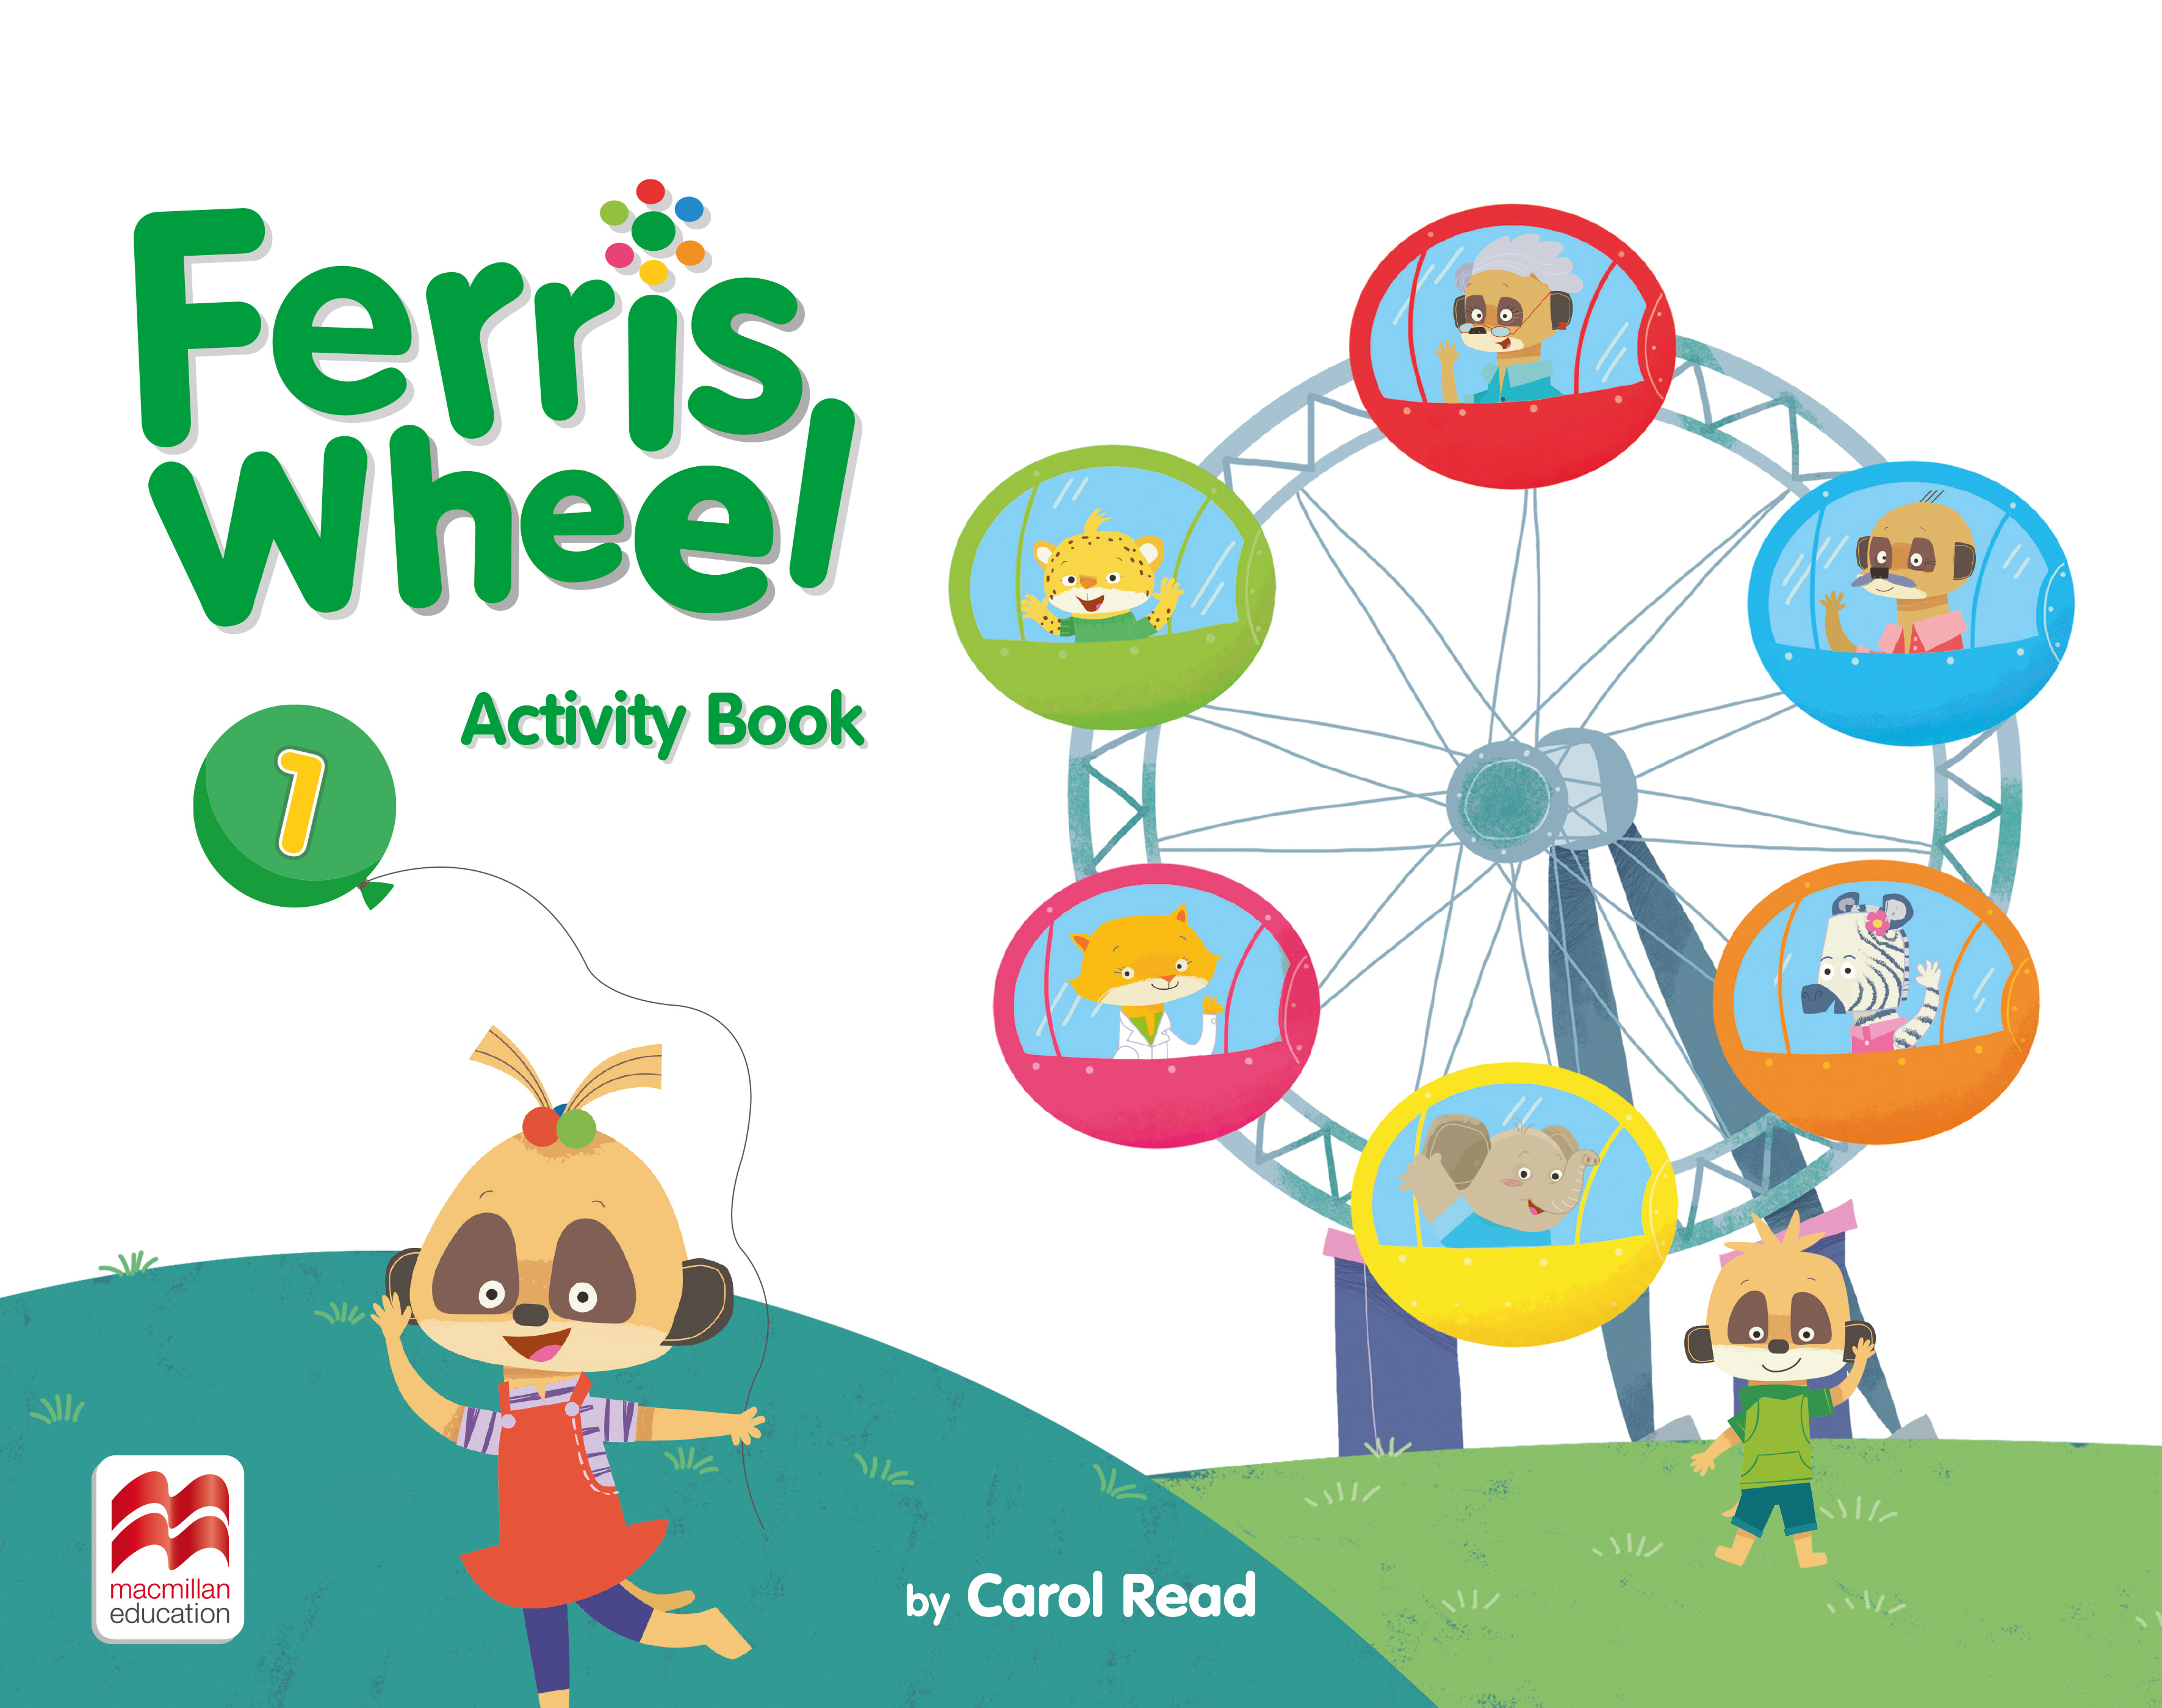 Ferris Whees Level 1 Activity Book